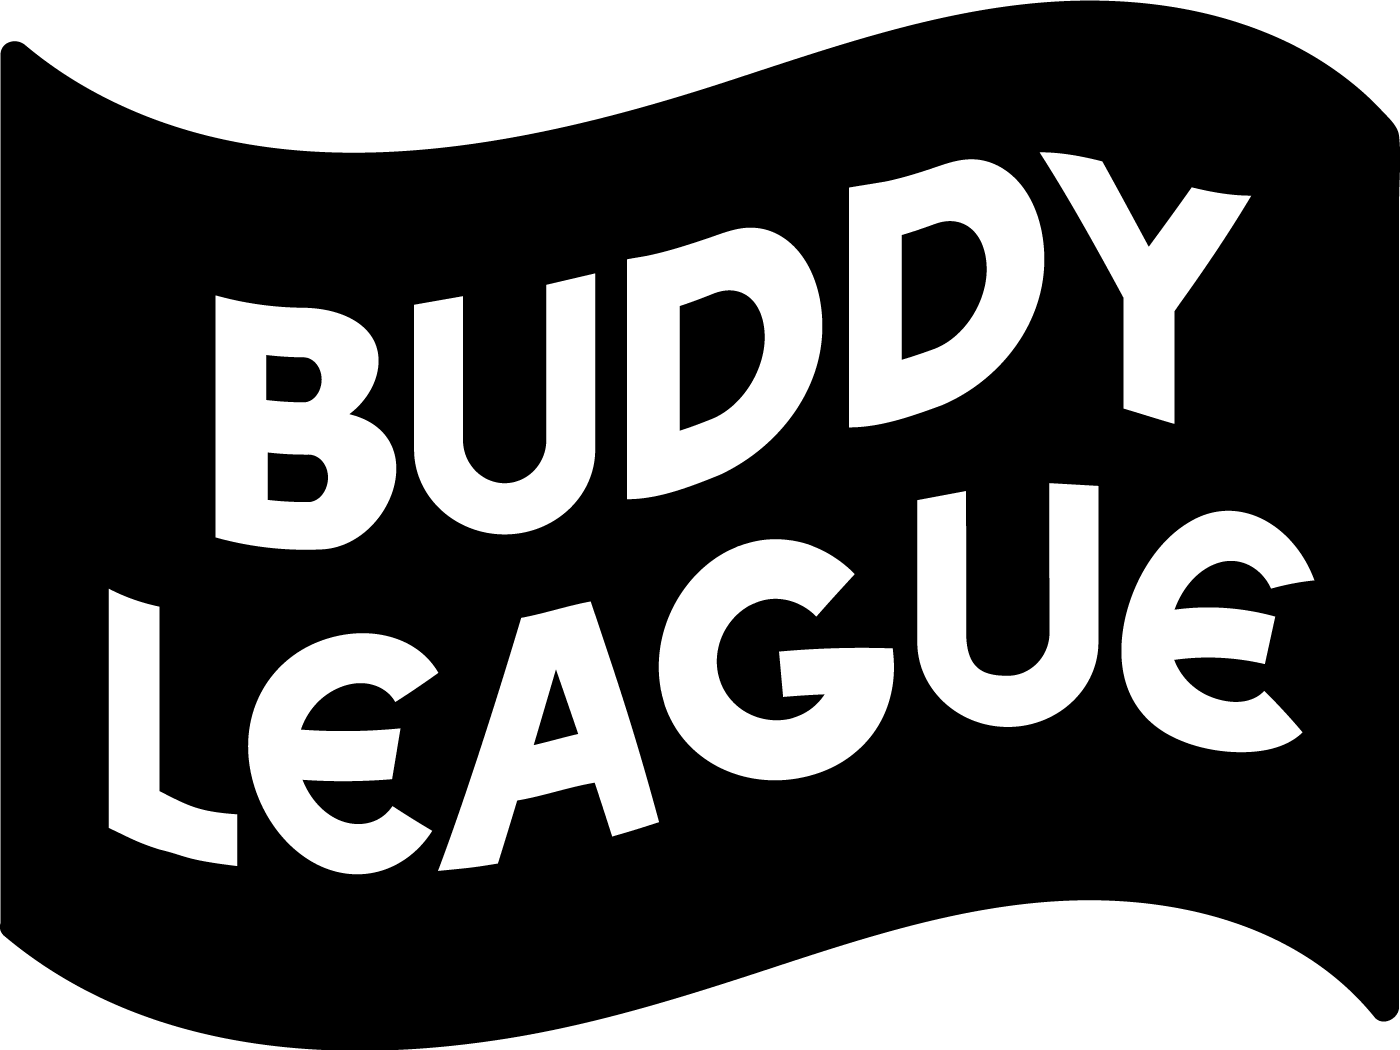 Buddy League